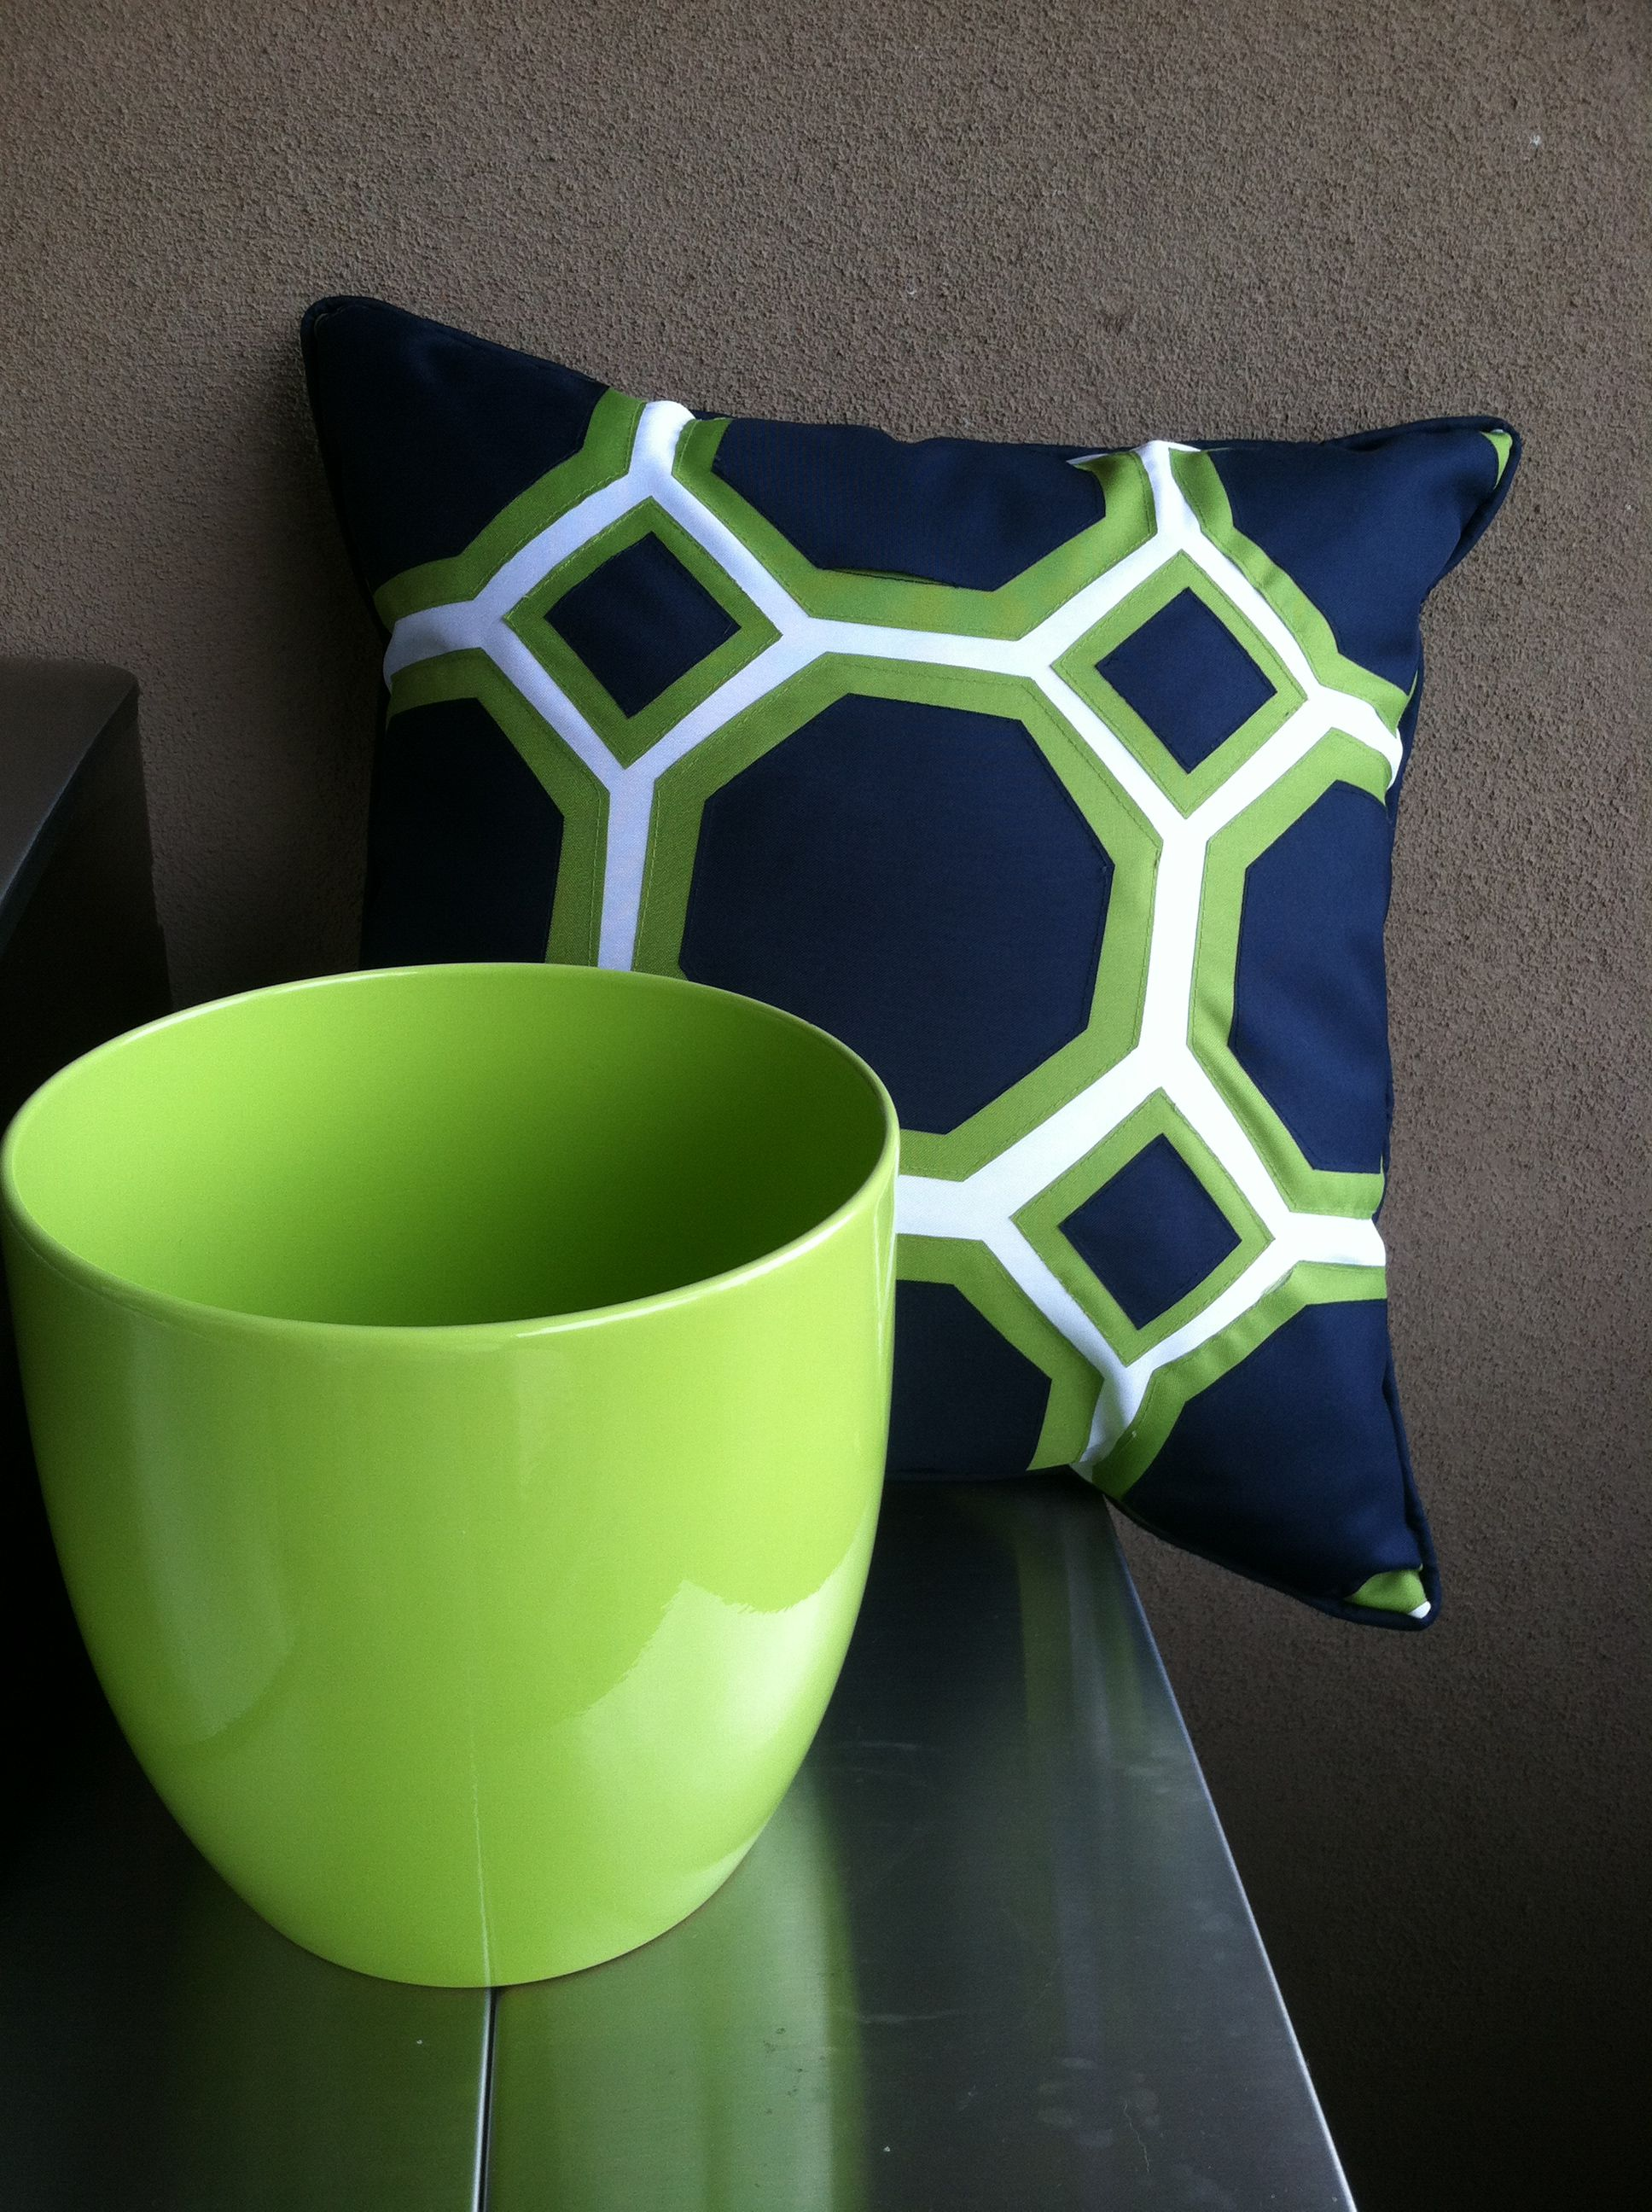 Outdoor Patio Pillow And Pot Lime Green Amp Navy Blue From